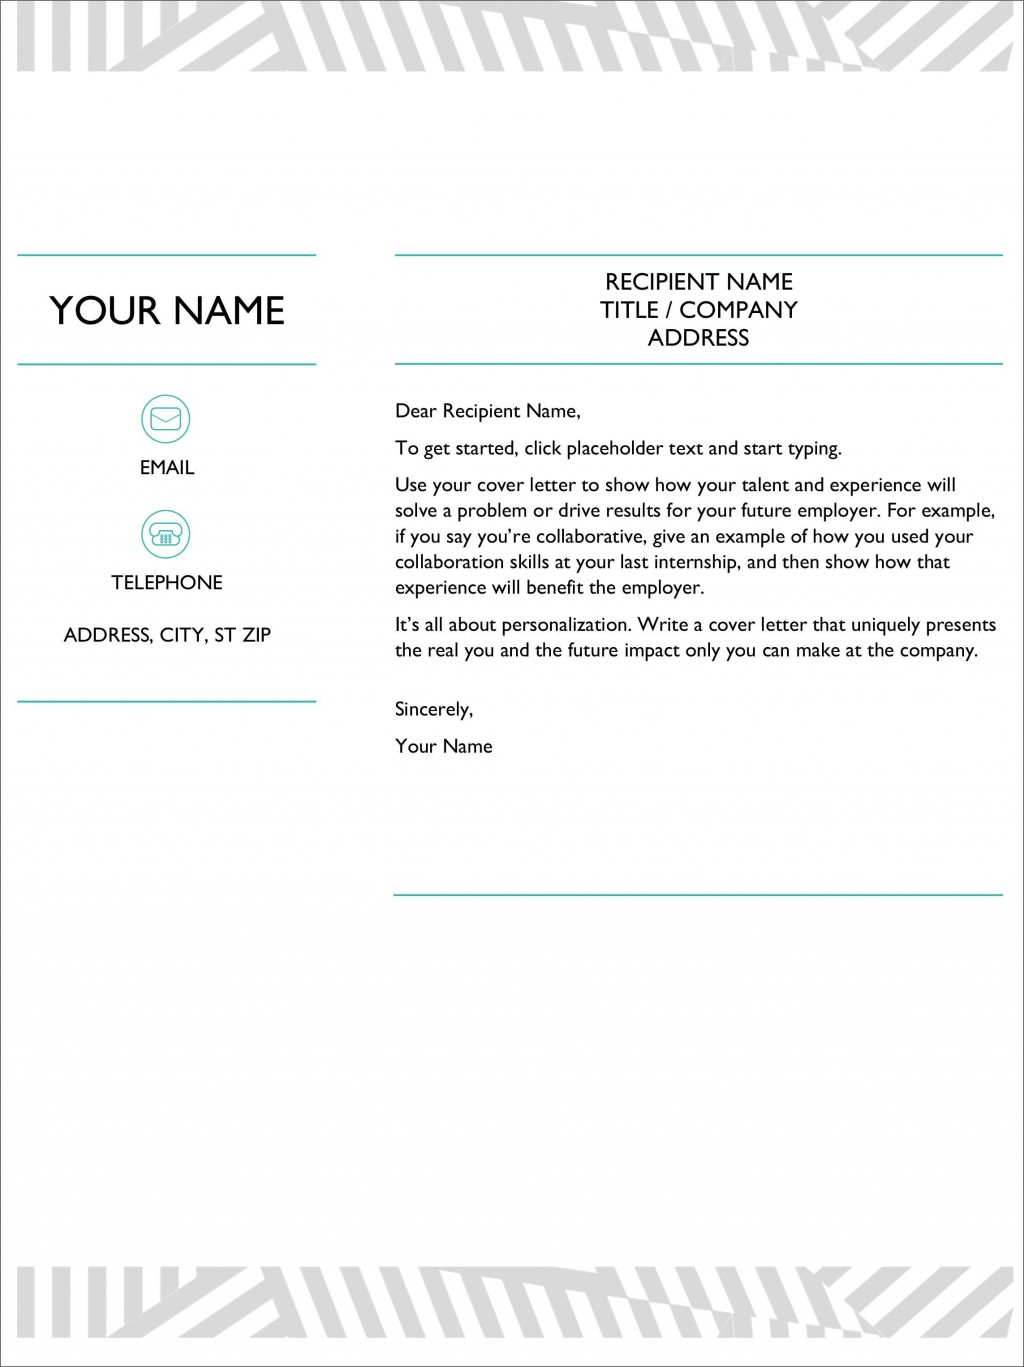 005 Unique Cover Letter Sample Template Word Highest Quality  Resume MicrosoftLarge